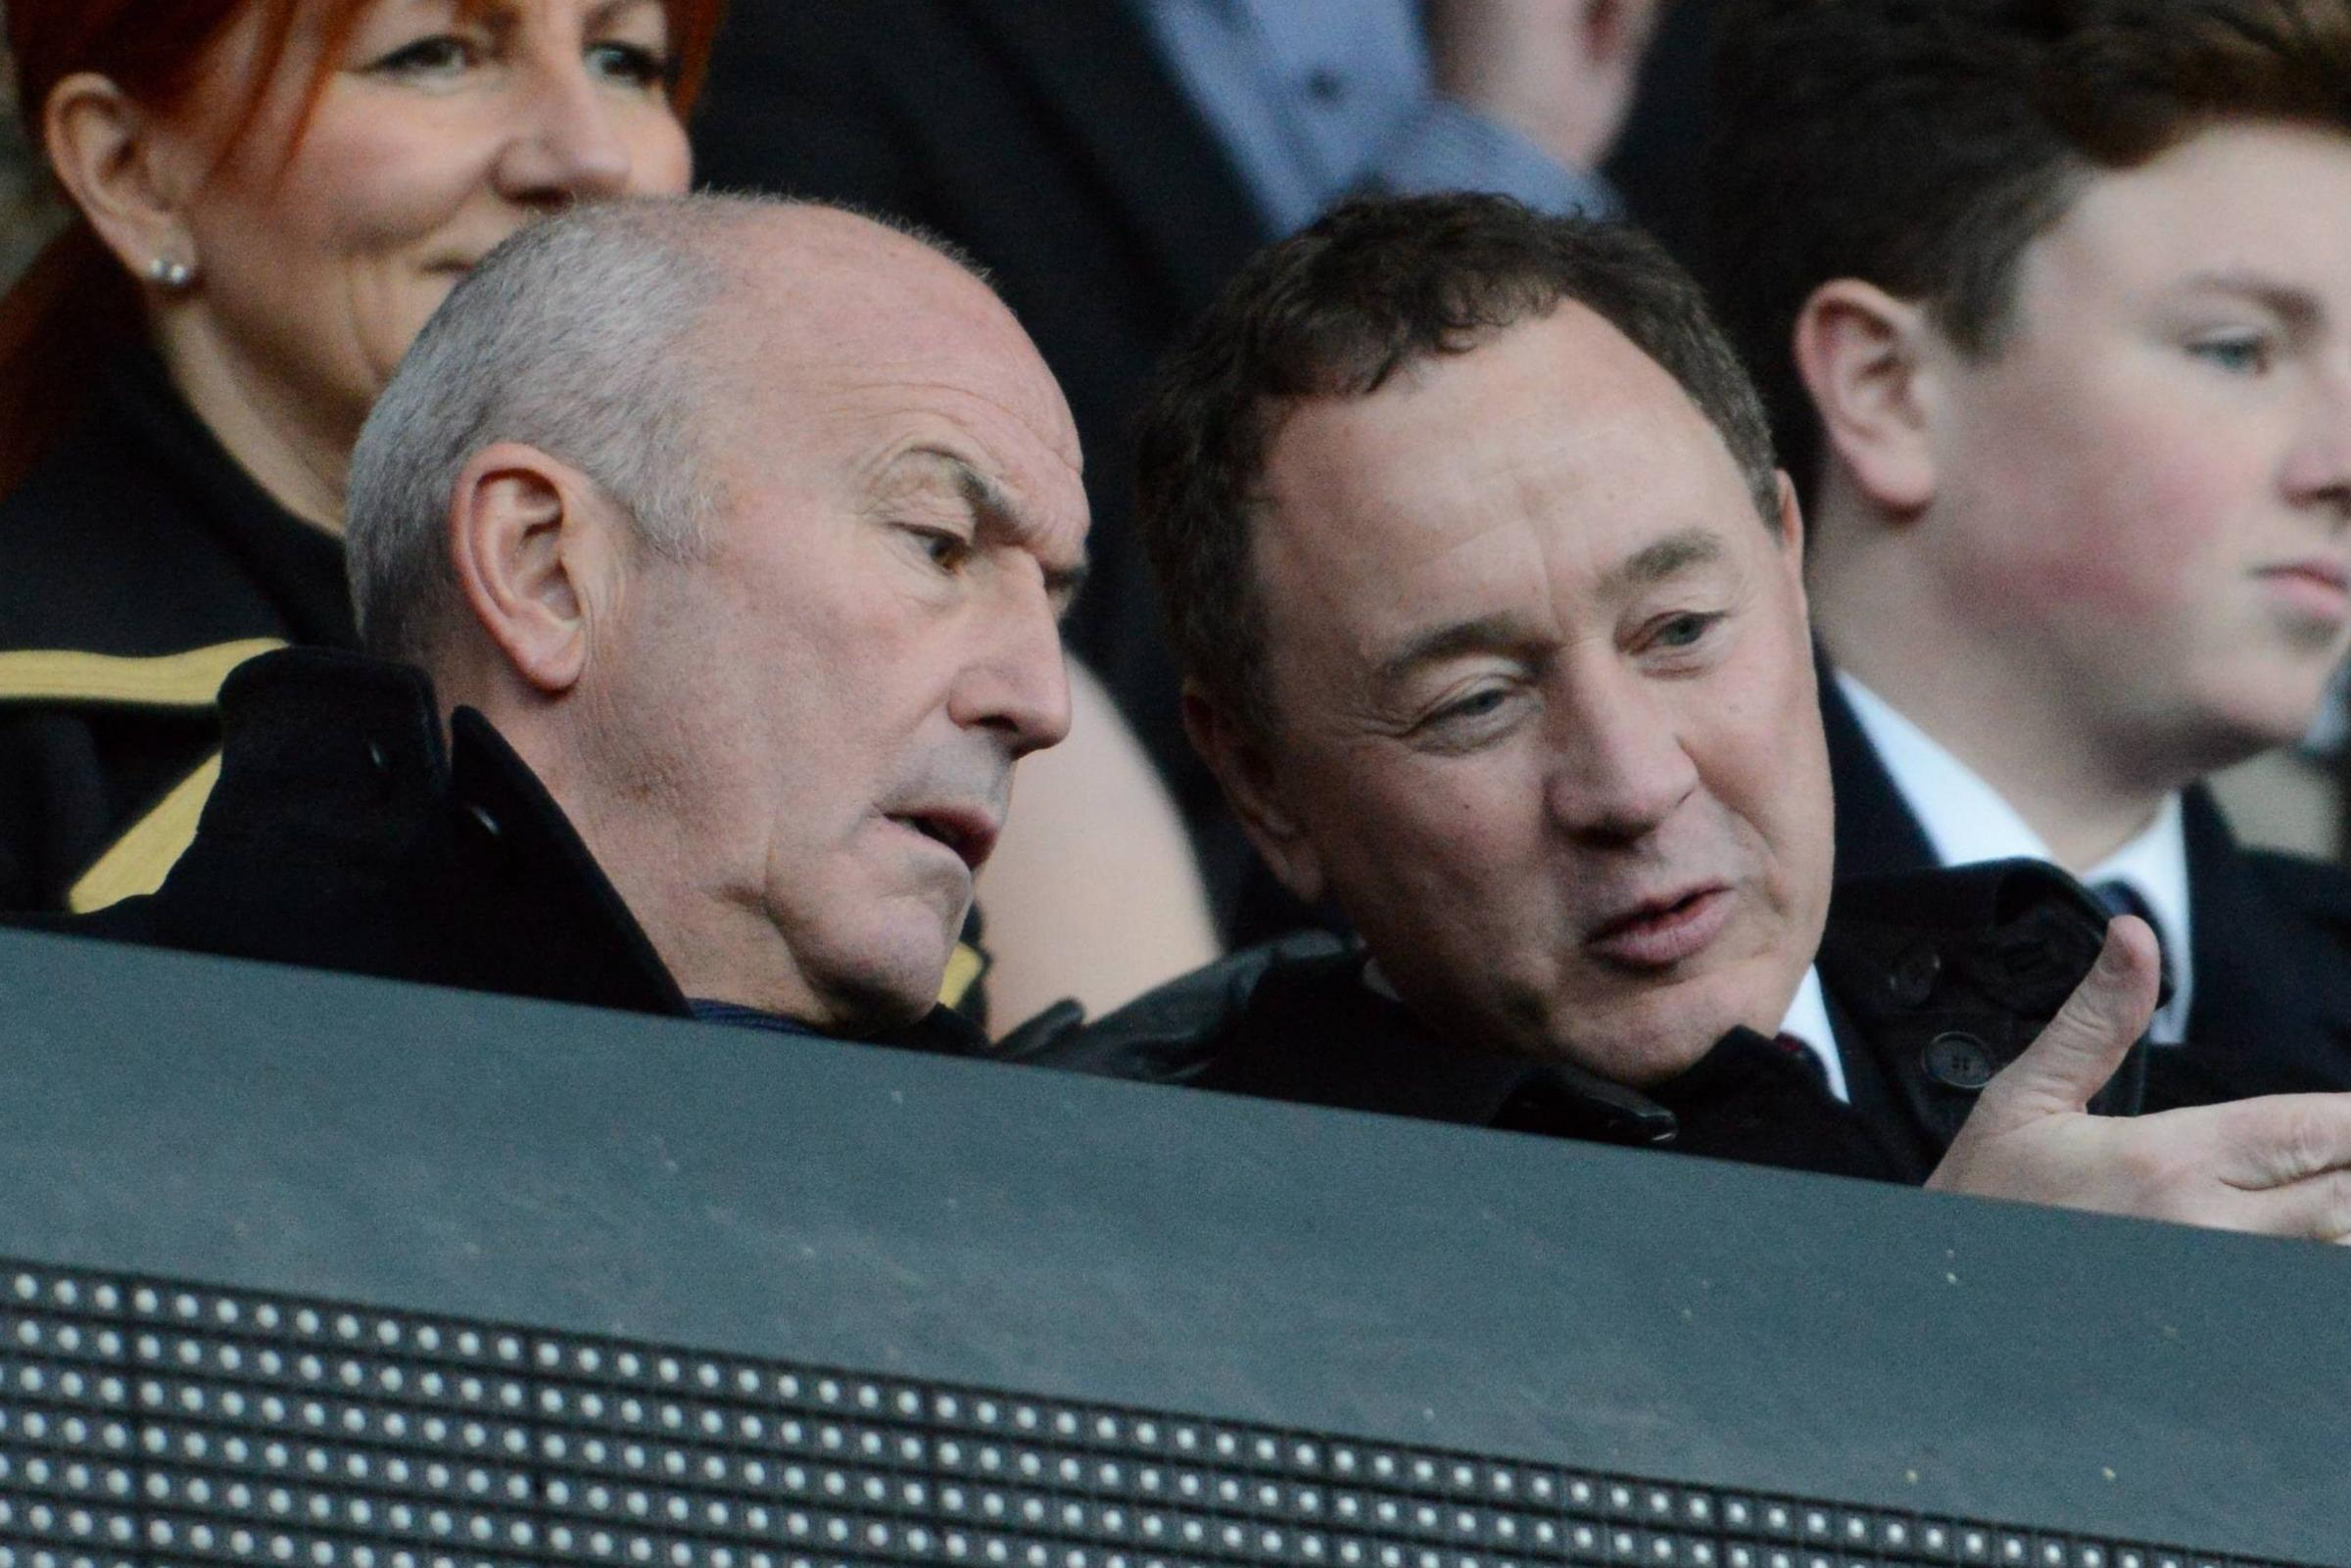 Tony Pulis: 'Steve Gibson is right - there's no point having financial rules if they're not being enforced'